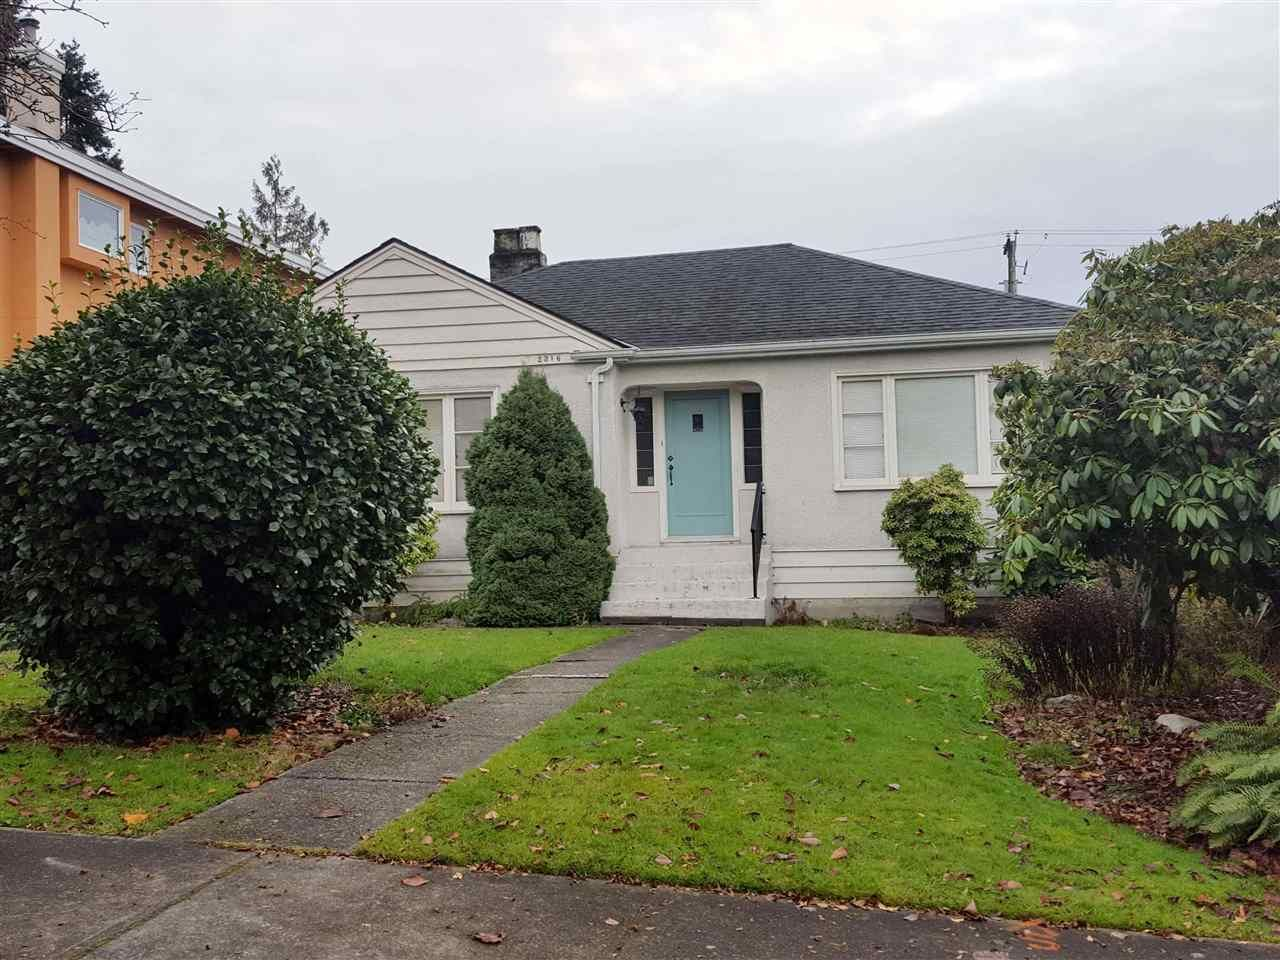 Photo 1: Photos: 2316 W 21ST Avenue in Vancouver: Arbutus House for sale (Vancouver West)  : MLS®# R2225210